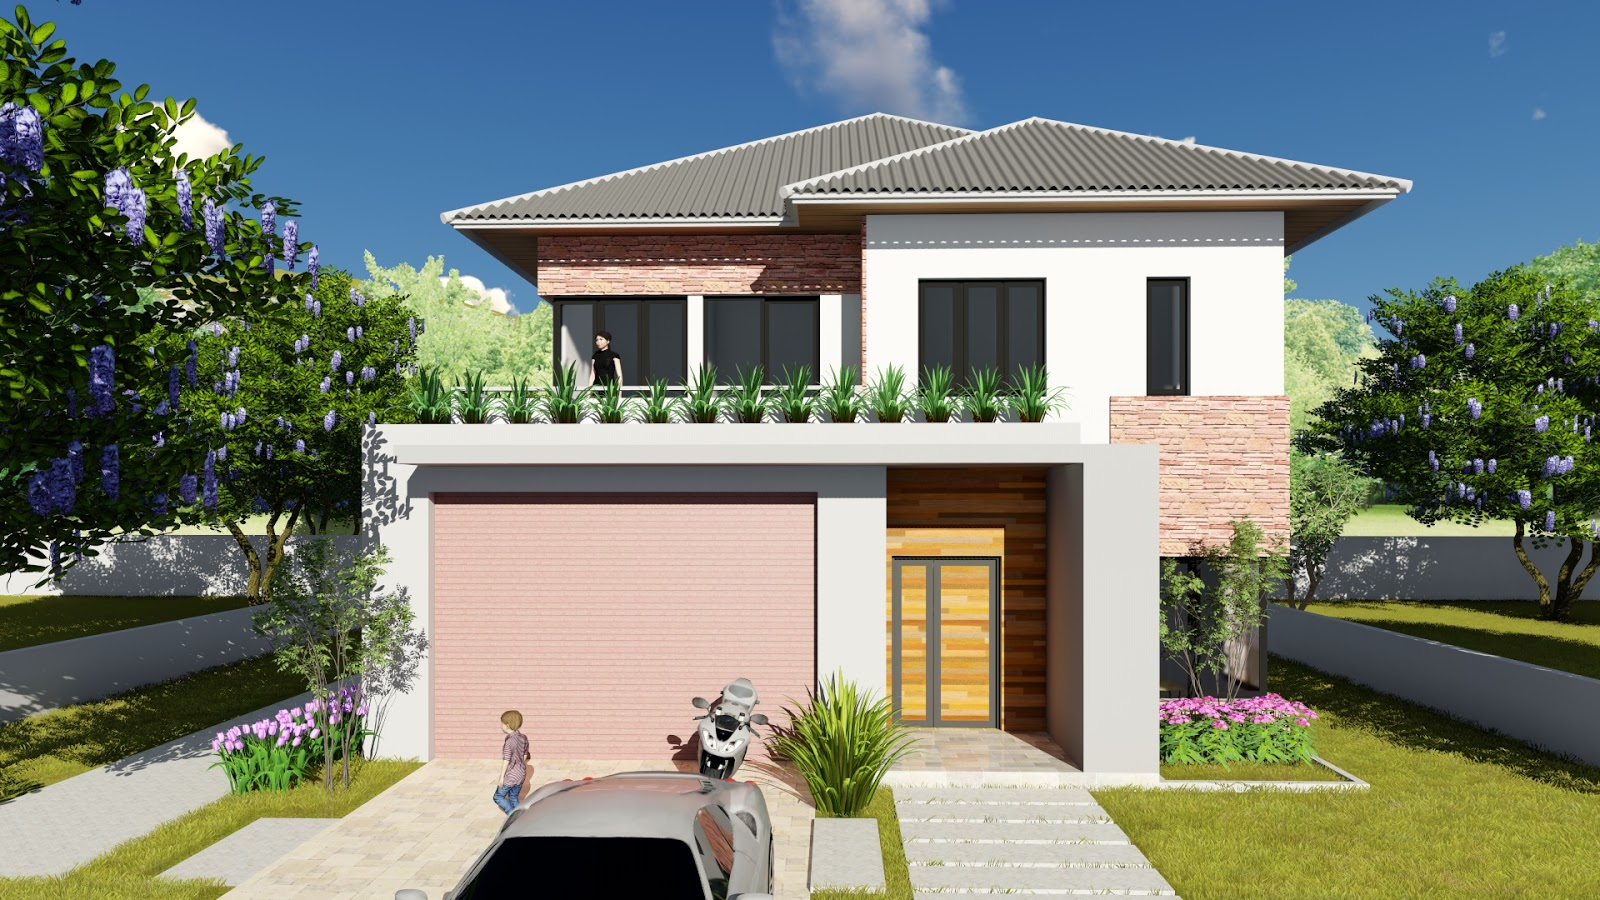 Sketchup Villa Design 11x13m Two Stories House With 3 Bedroom